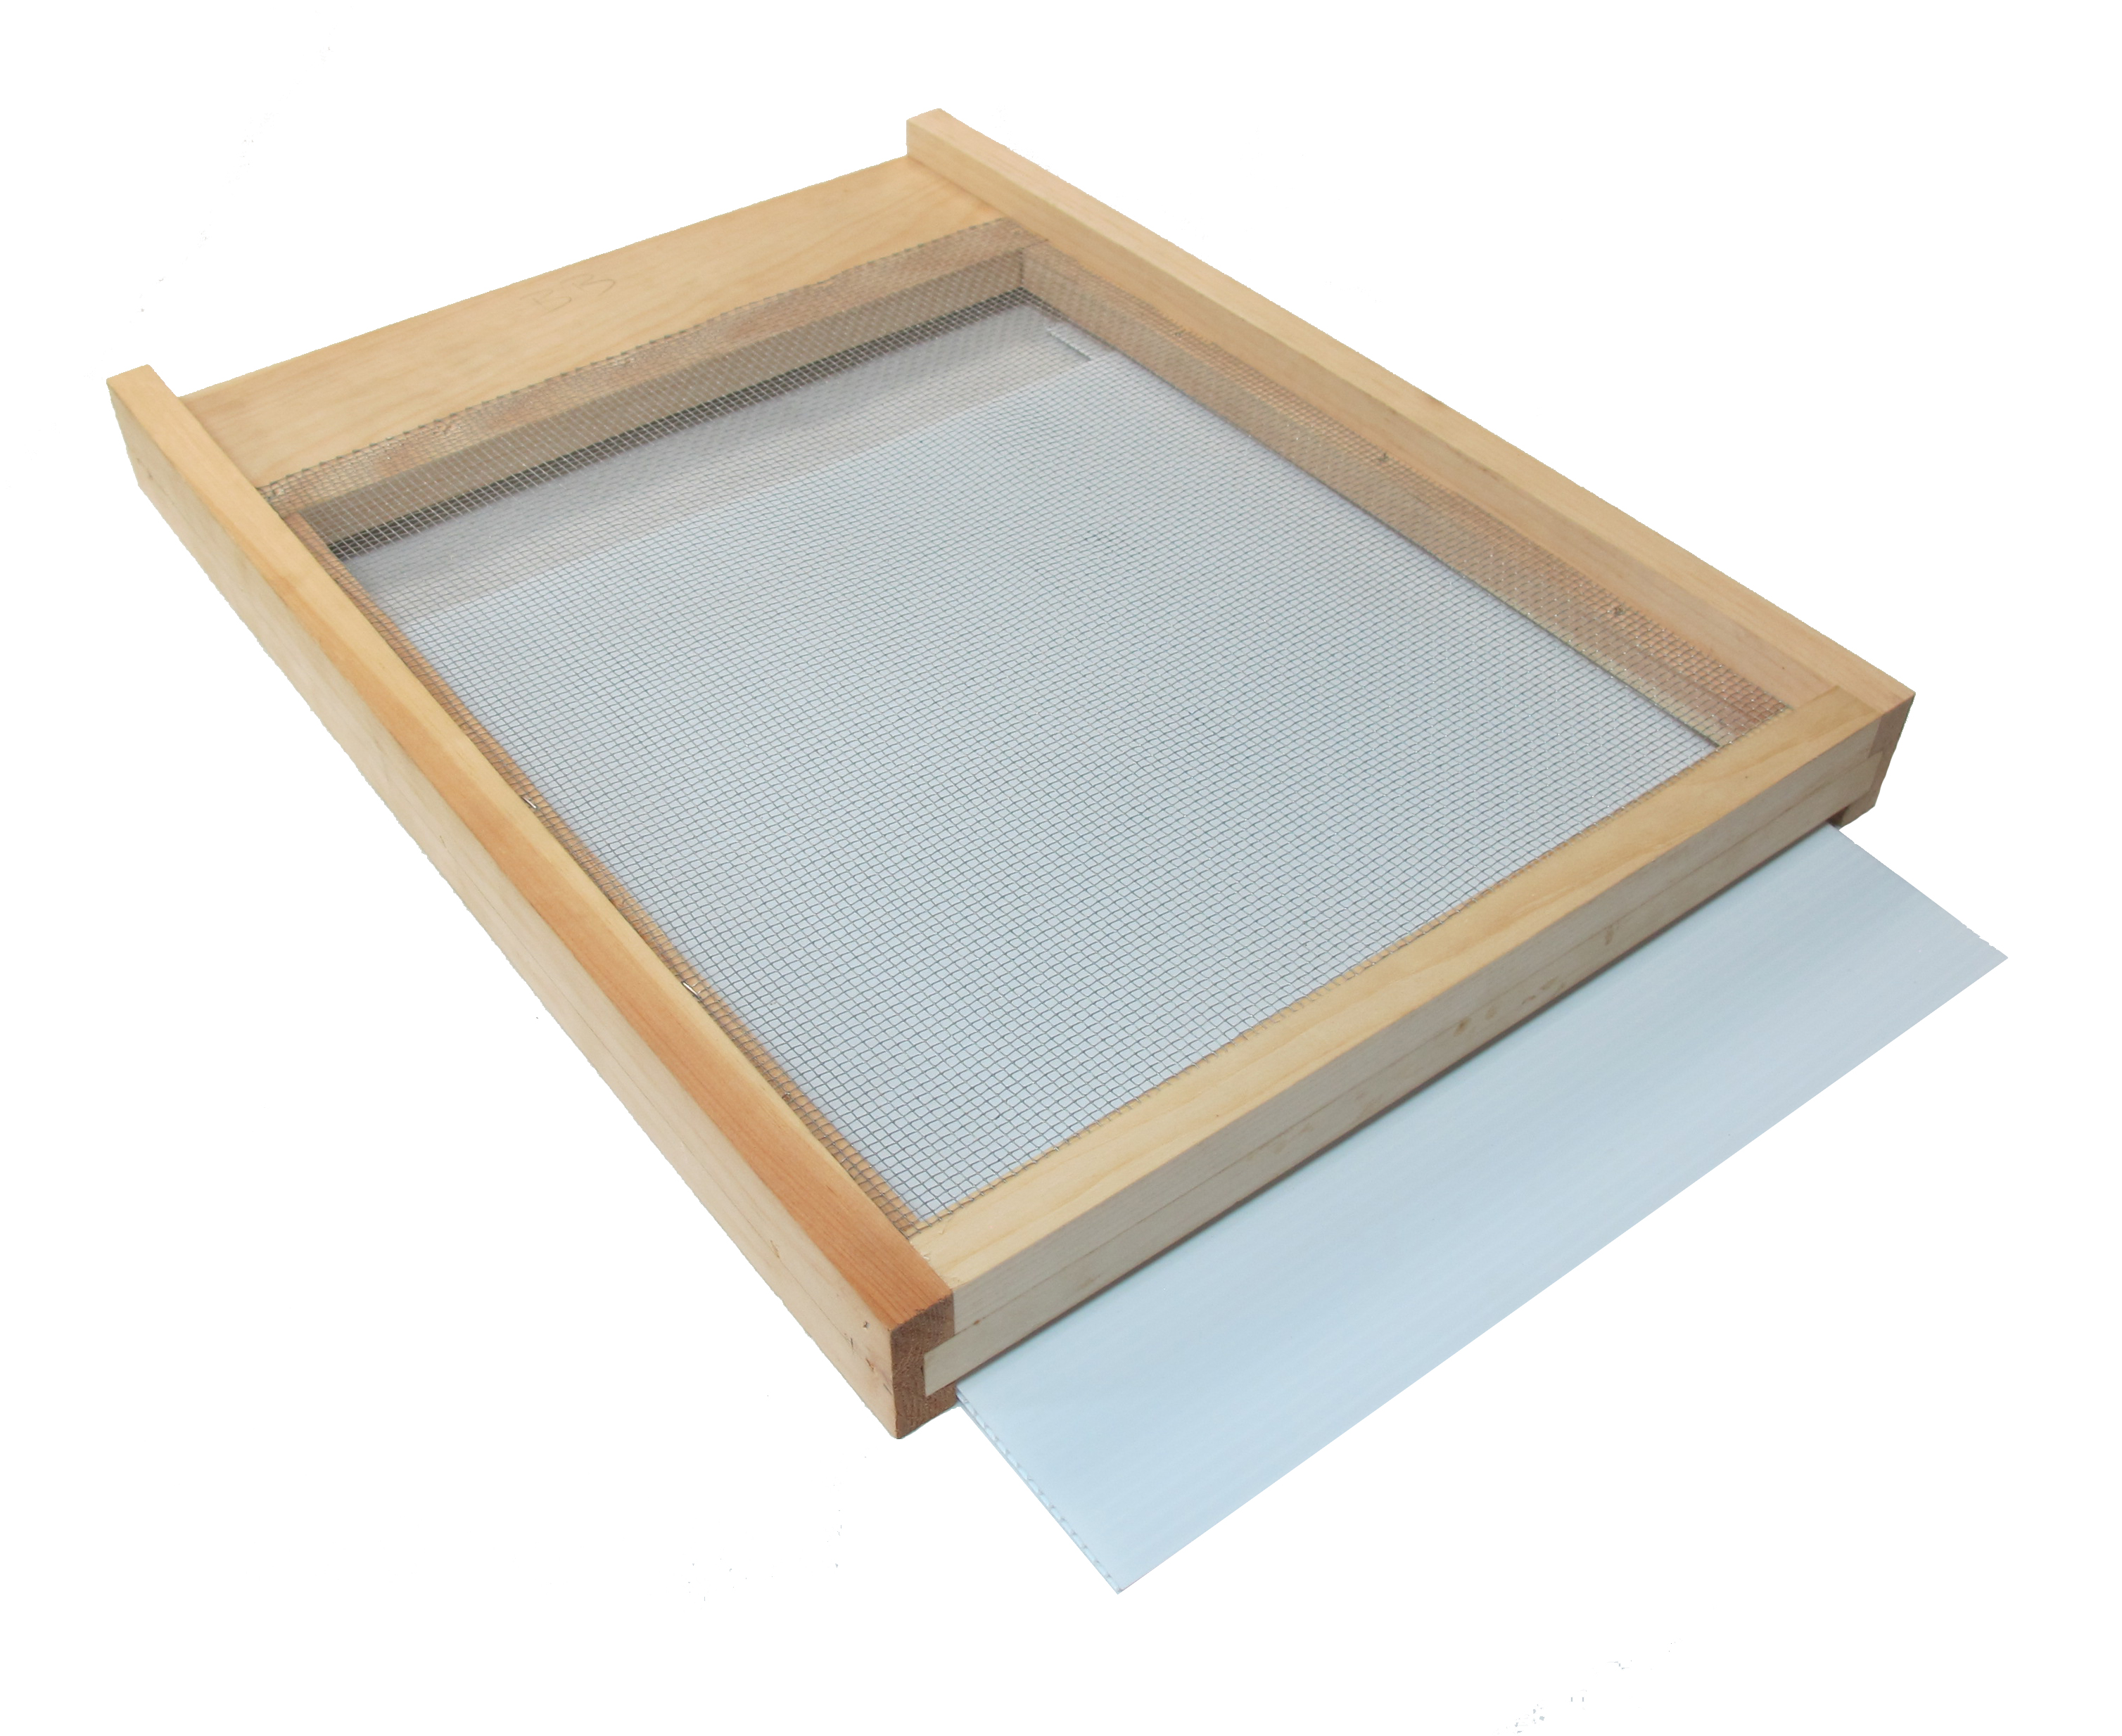 Screened Bottom Board - With Plastic Tray